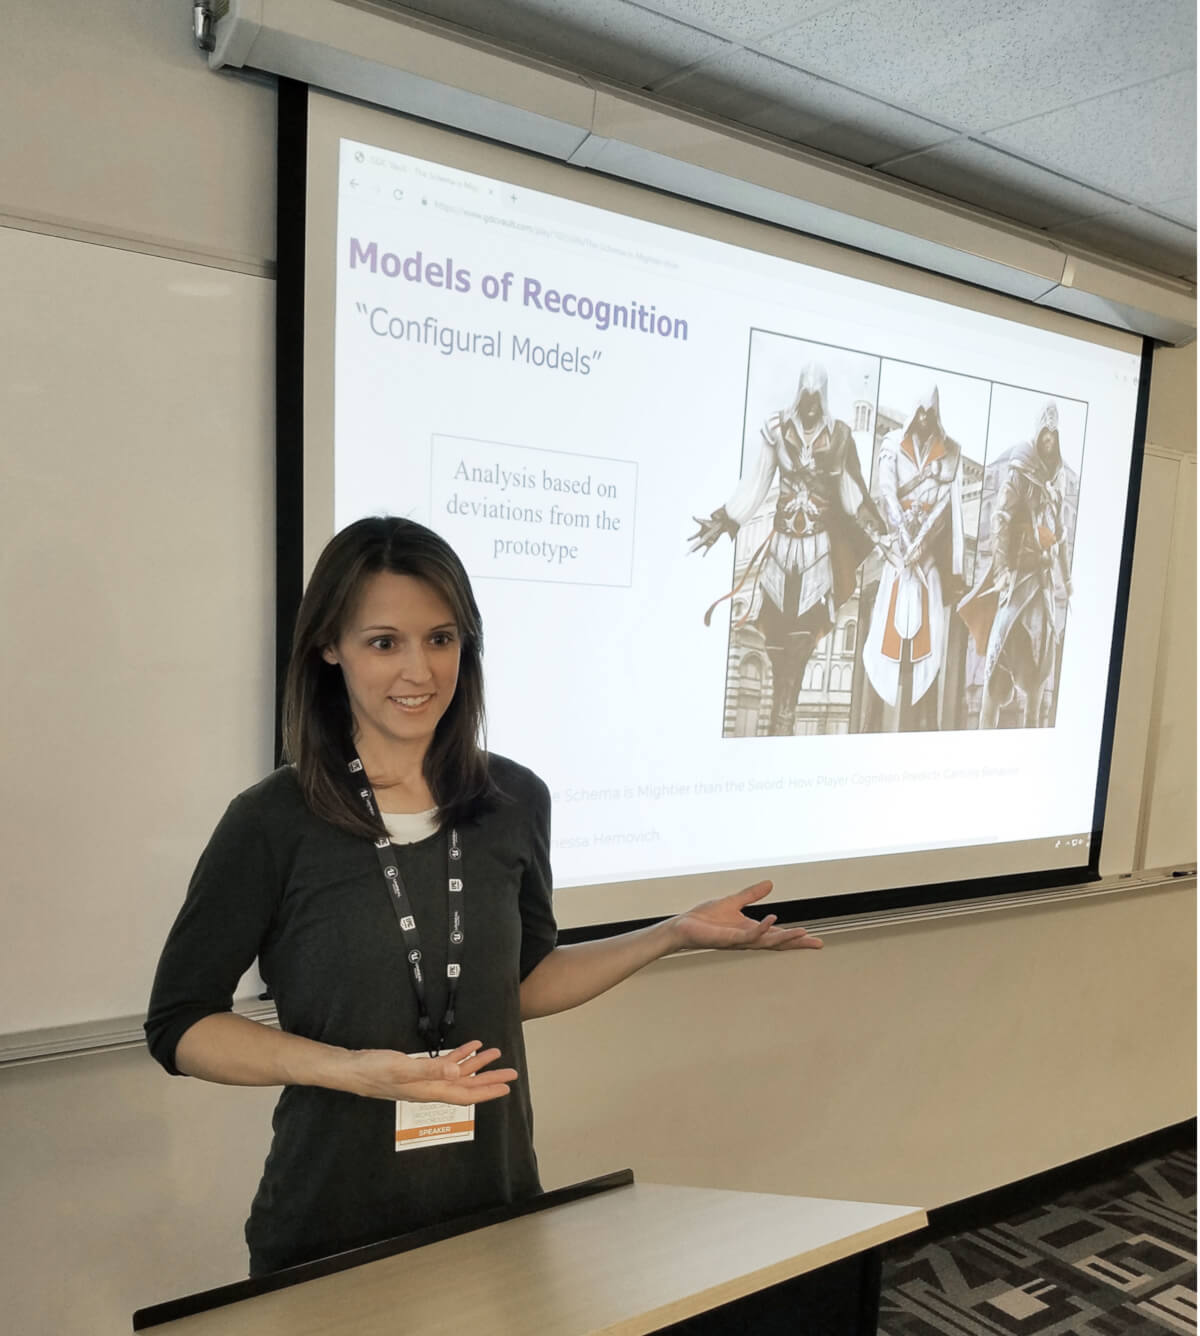 Professor Vanessa Hemovich lectures while gesturing at a slide showing characters from the game Assassin's Creed.